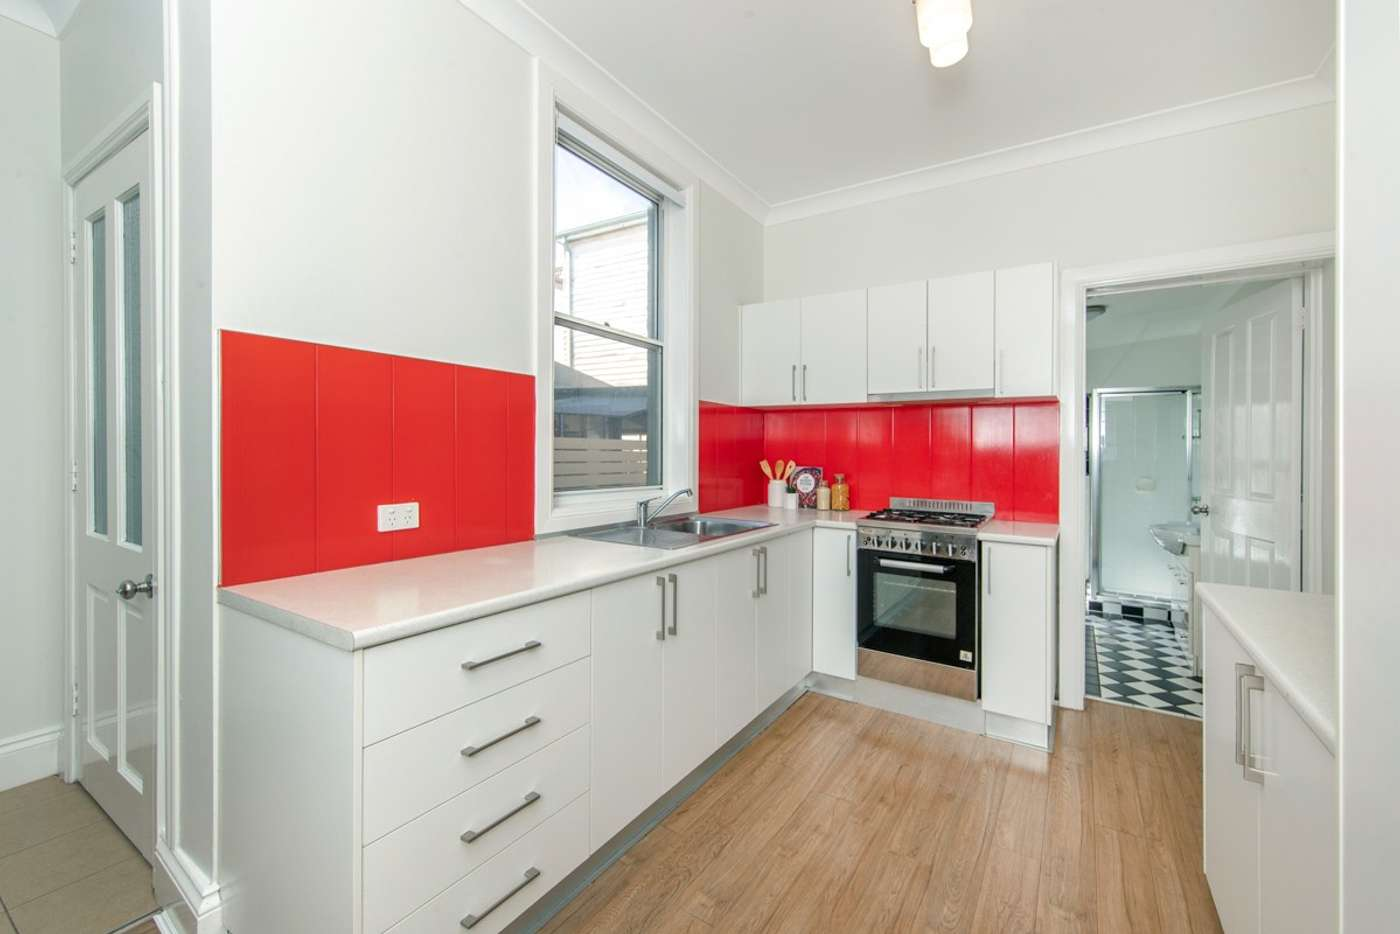 Sixth view of Homely house listing, 27 Bruce Street, Cooks Hill NSW 2300